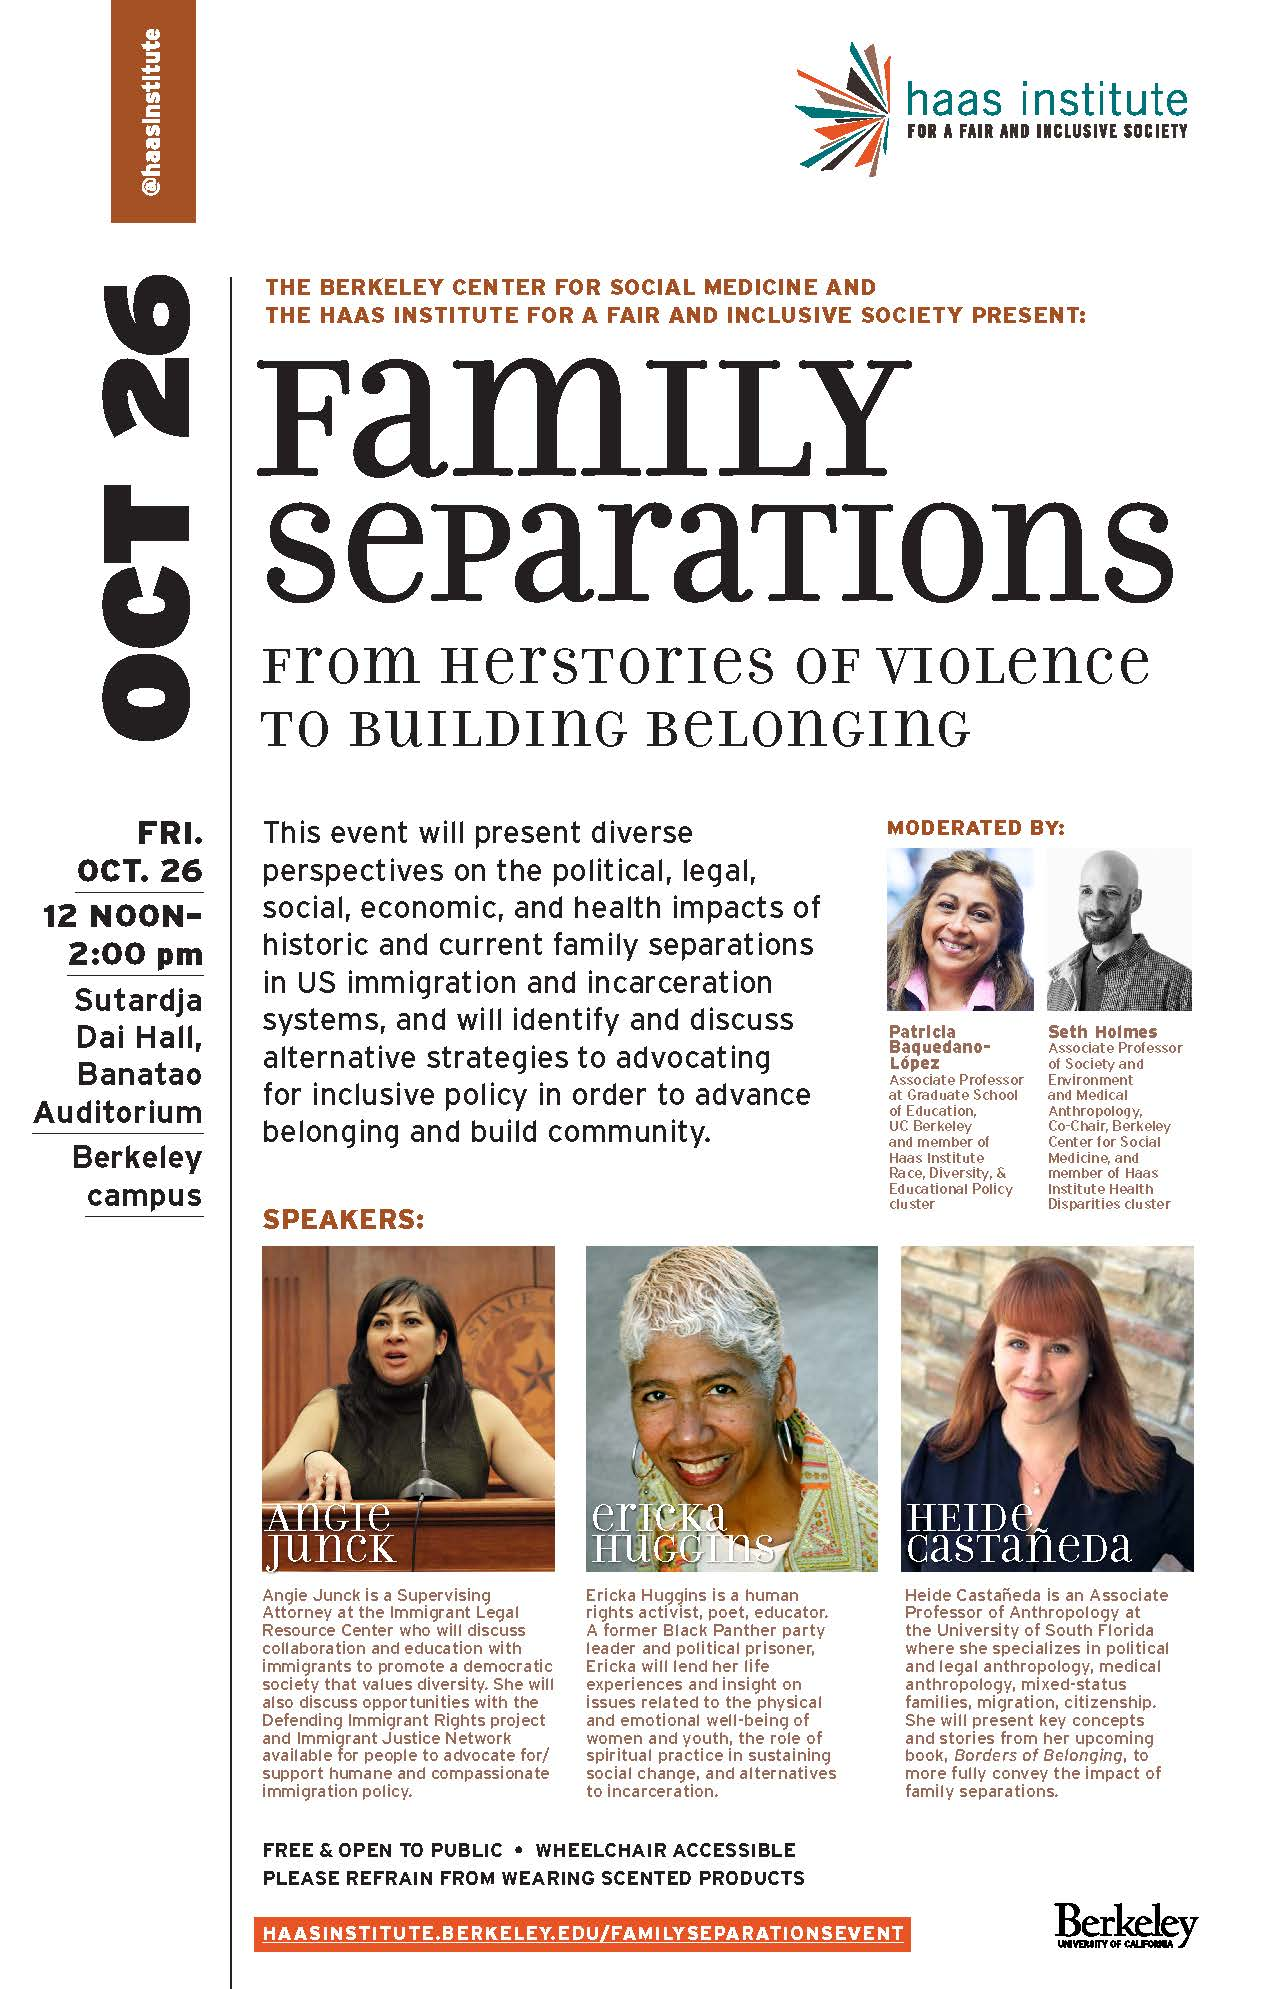 Flier for the Family separations event